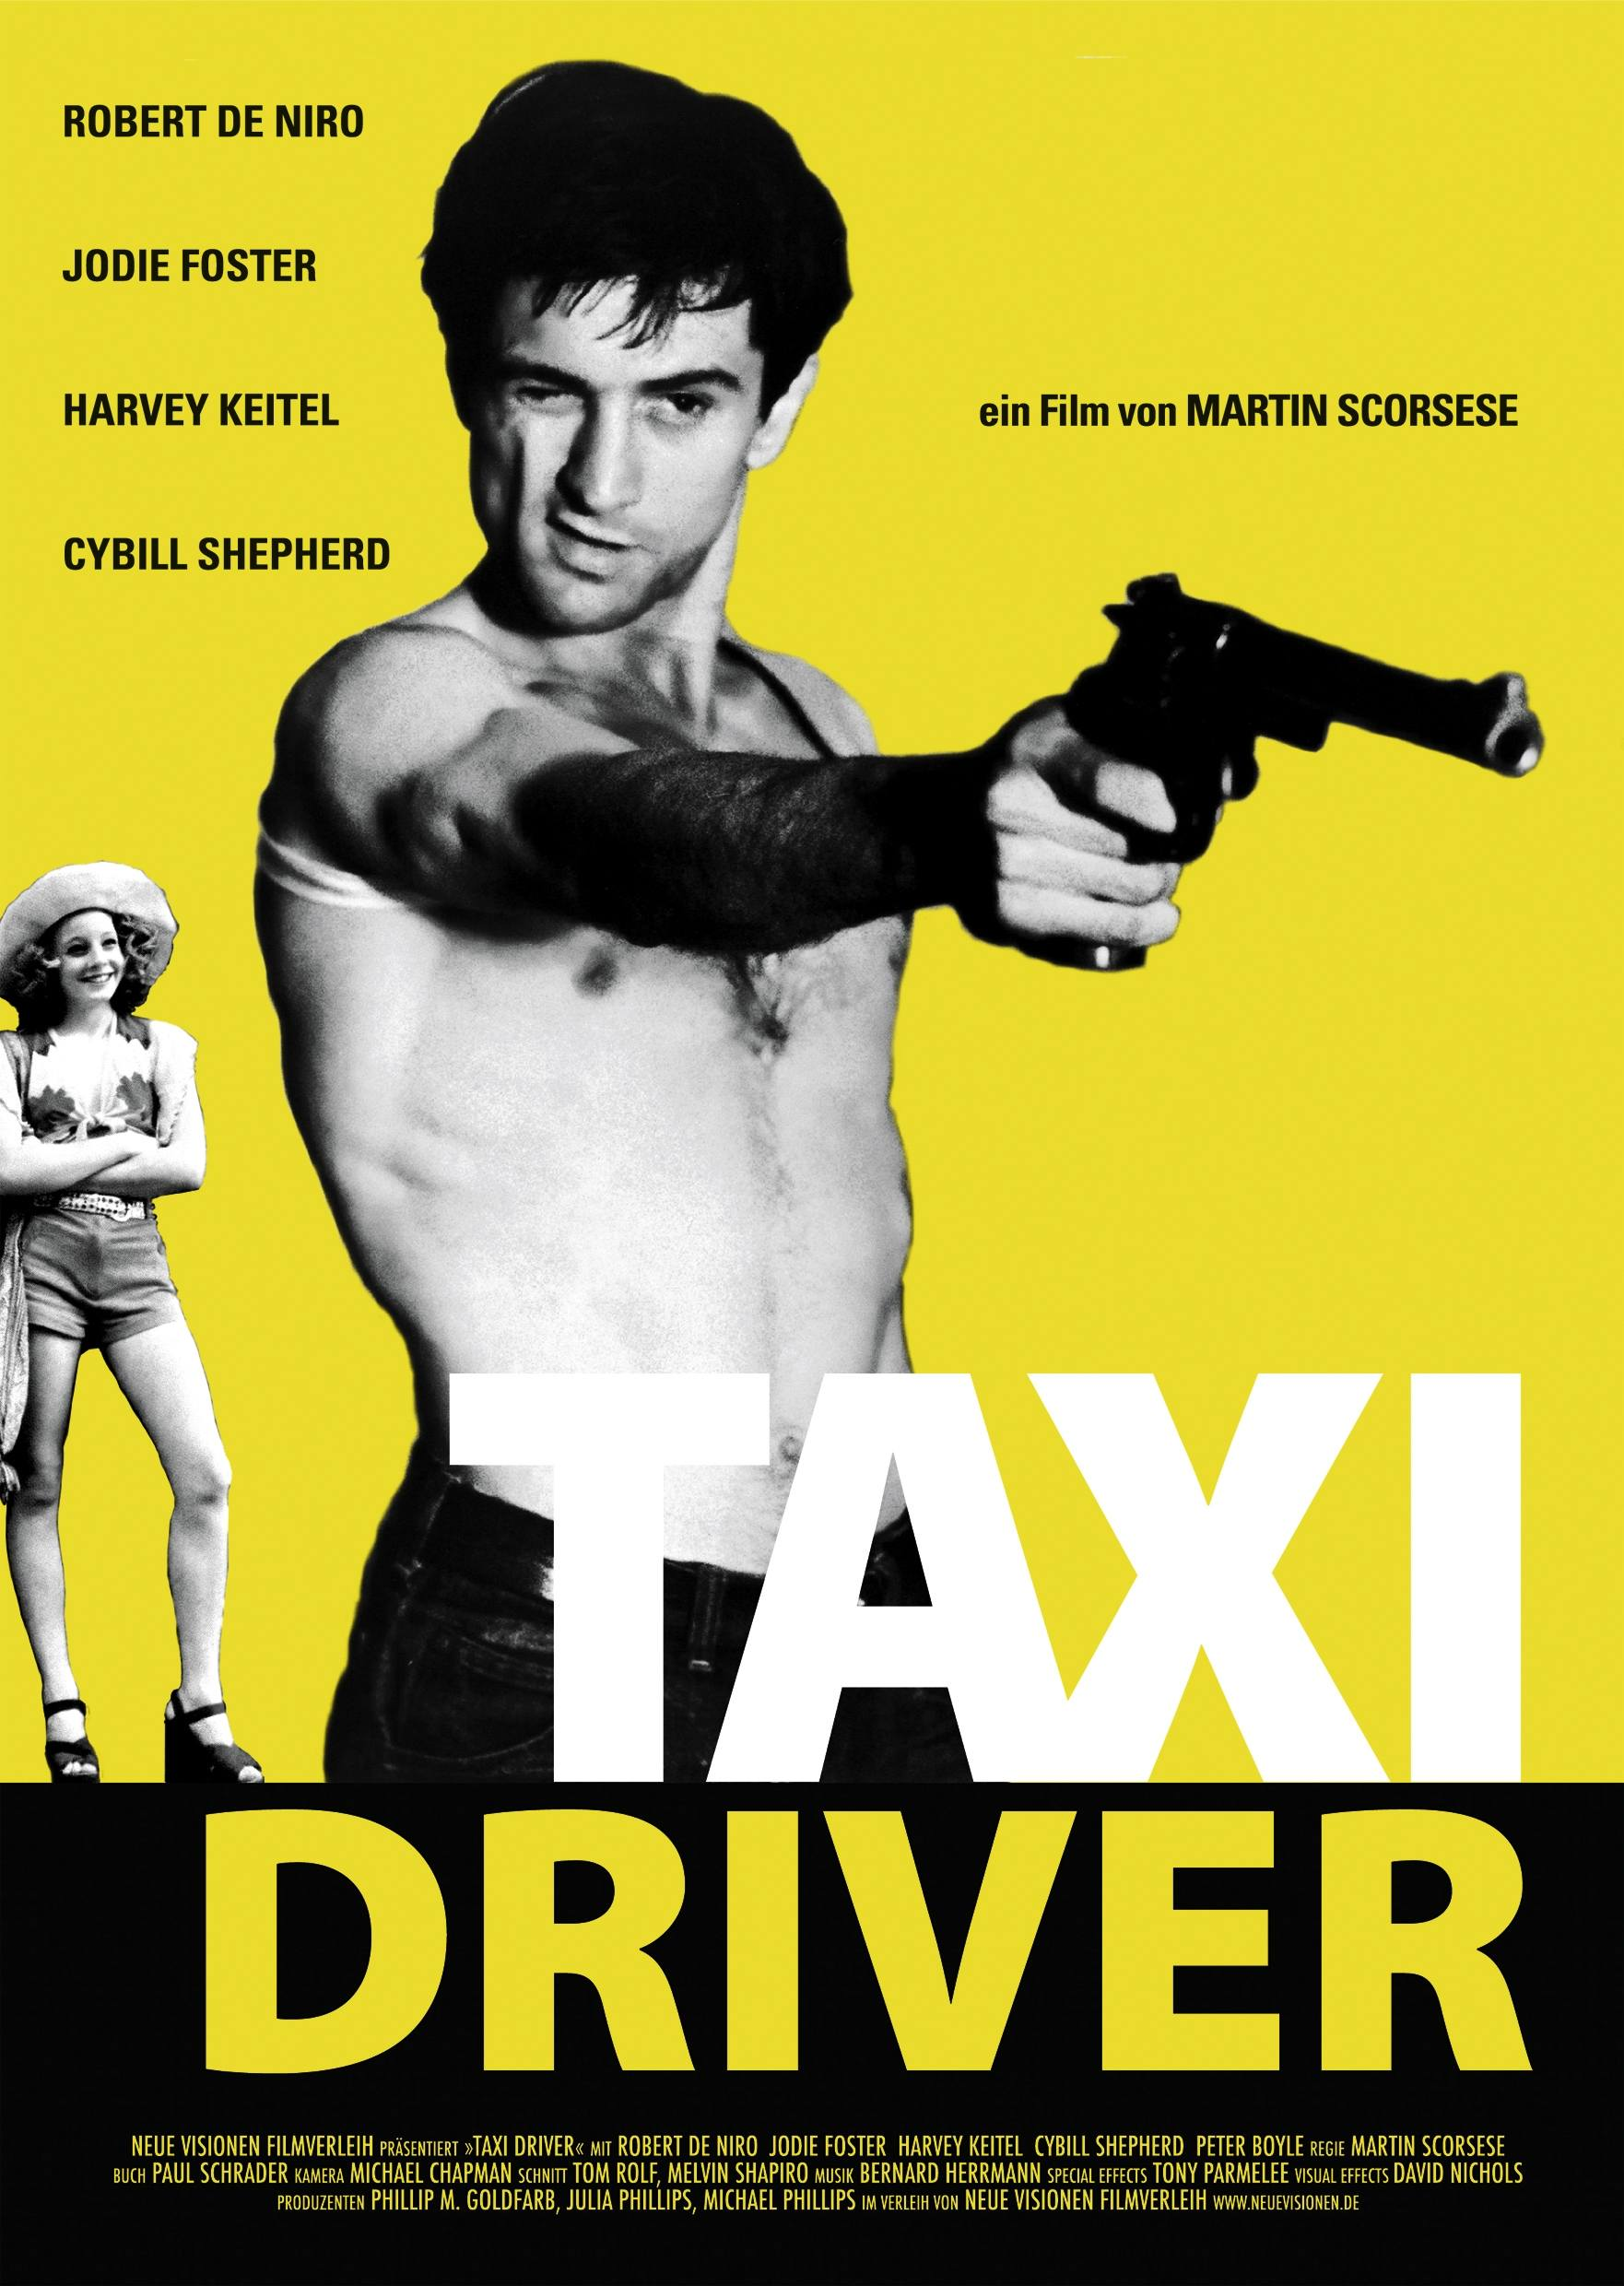 http://cinemacao.files.wordpress.com/2011/04/taxi_driver_poster.jpg